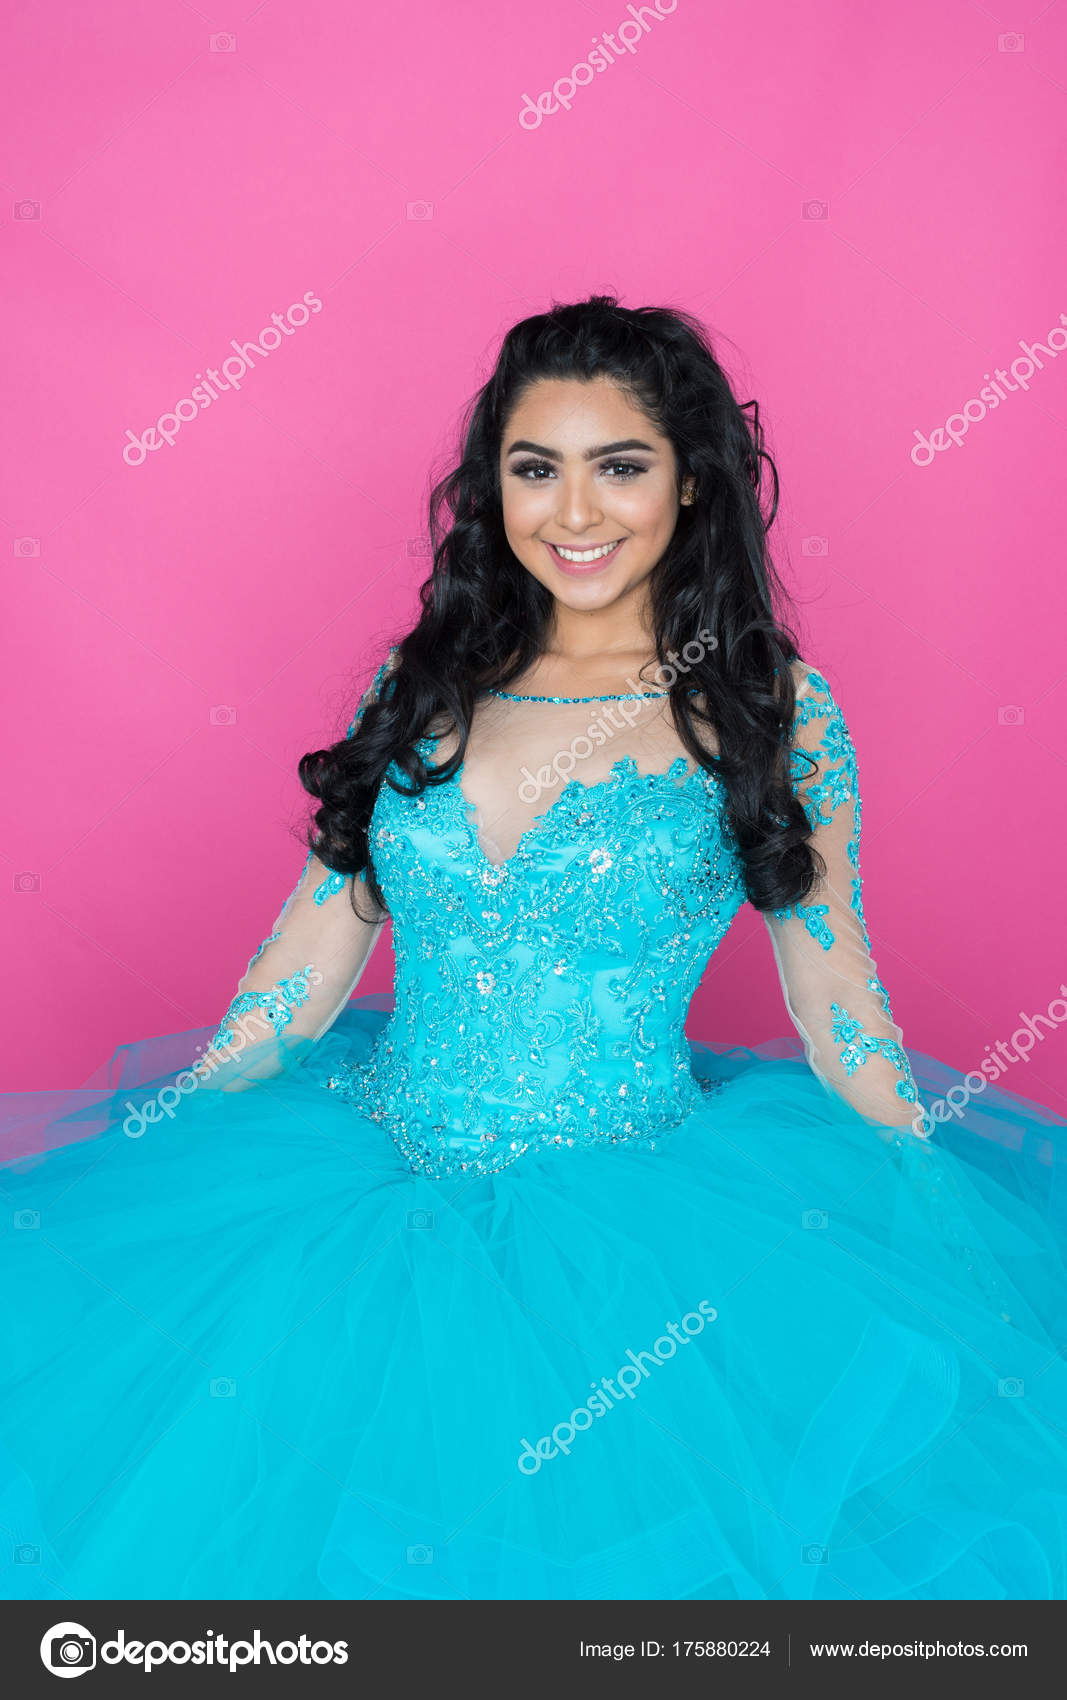 Prom Dress for Teen